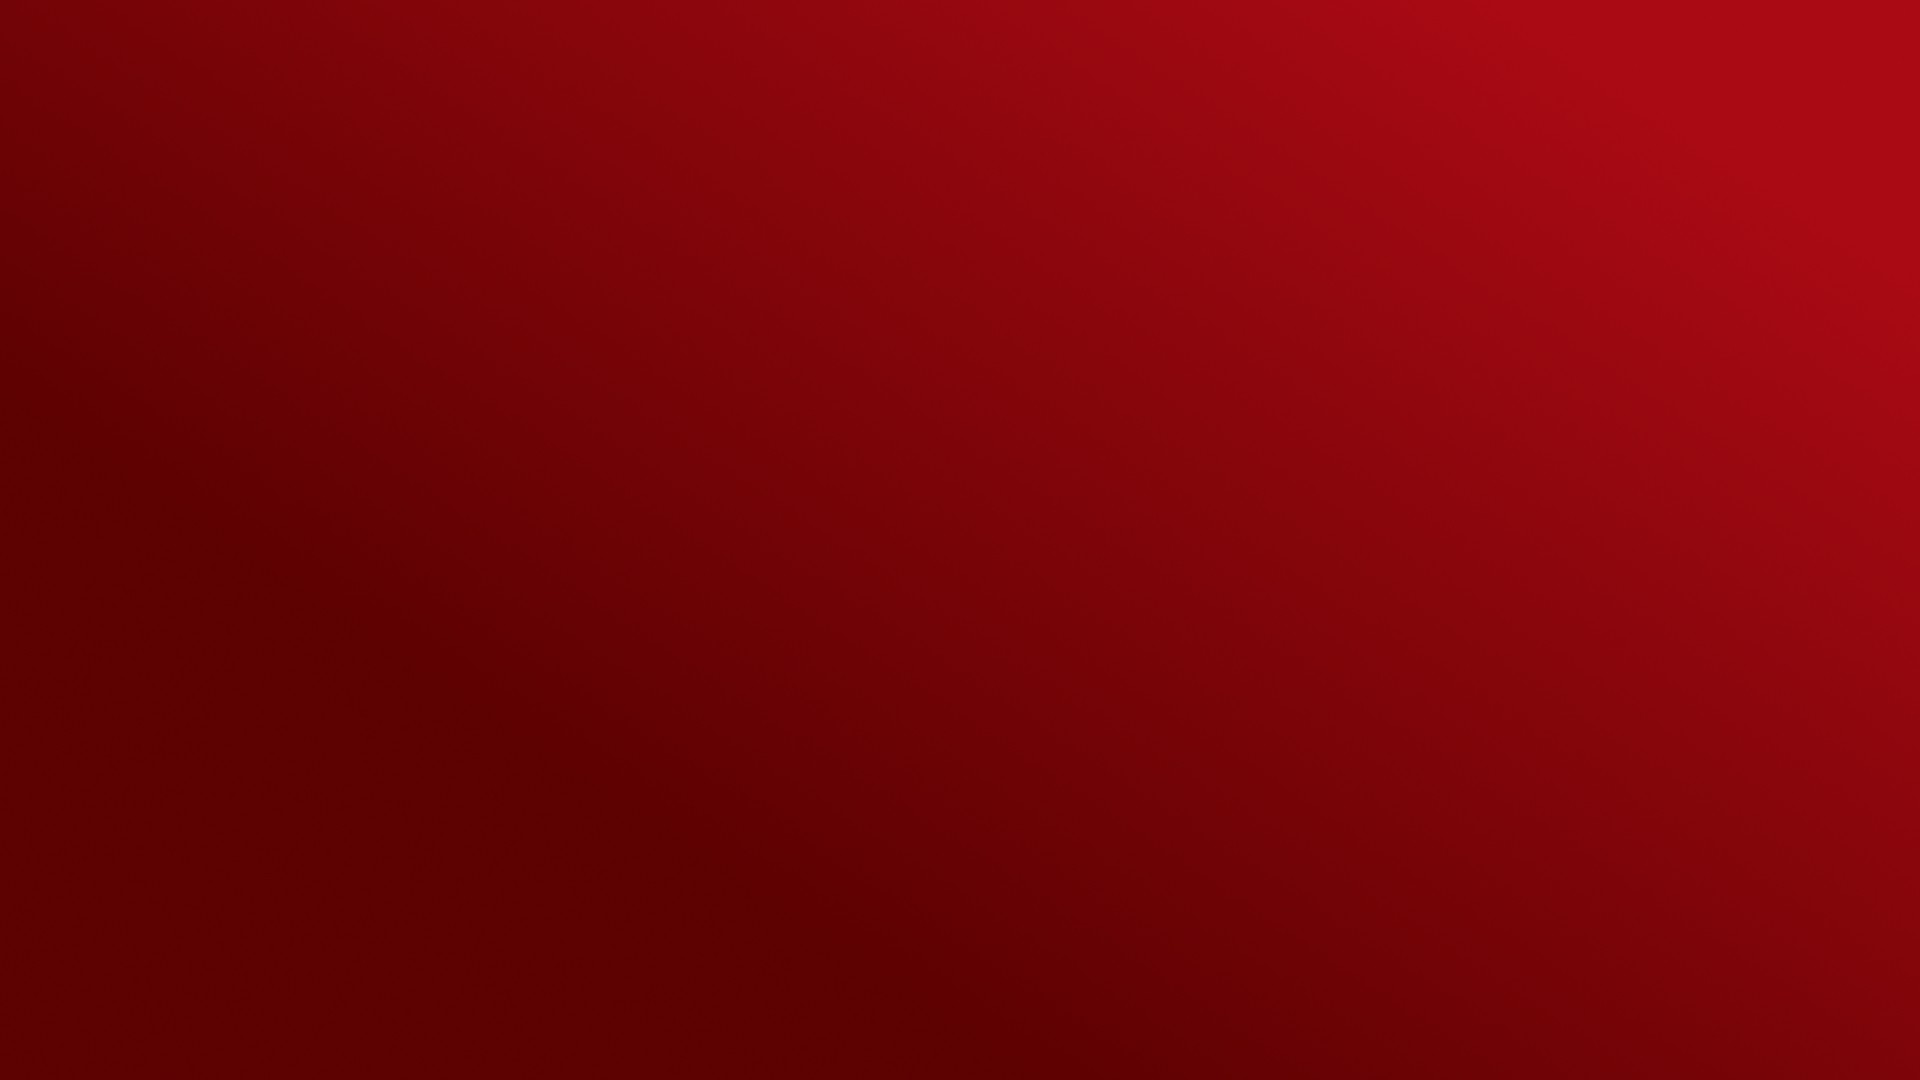 1920x1080 Simple red gradient wallpaper: